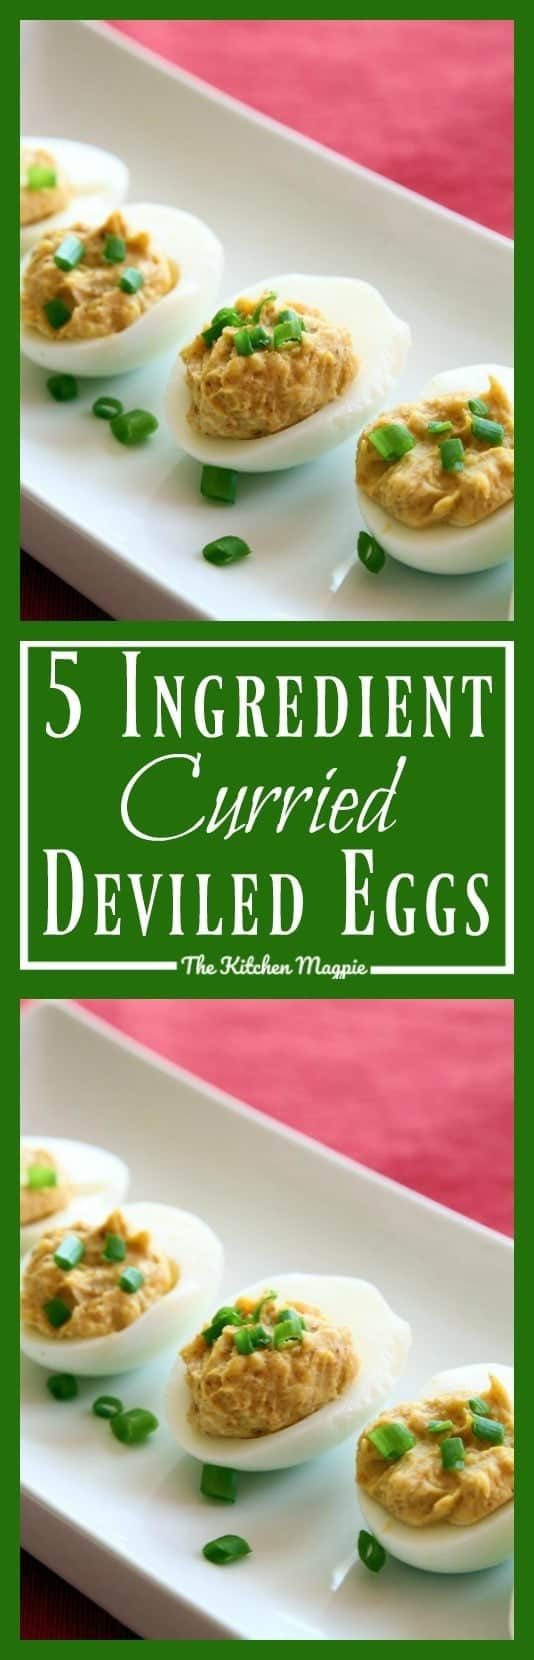 Amazingly easy and seriously delicious curried deviled eggs! #deviled #eggs #curry #appetizer